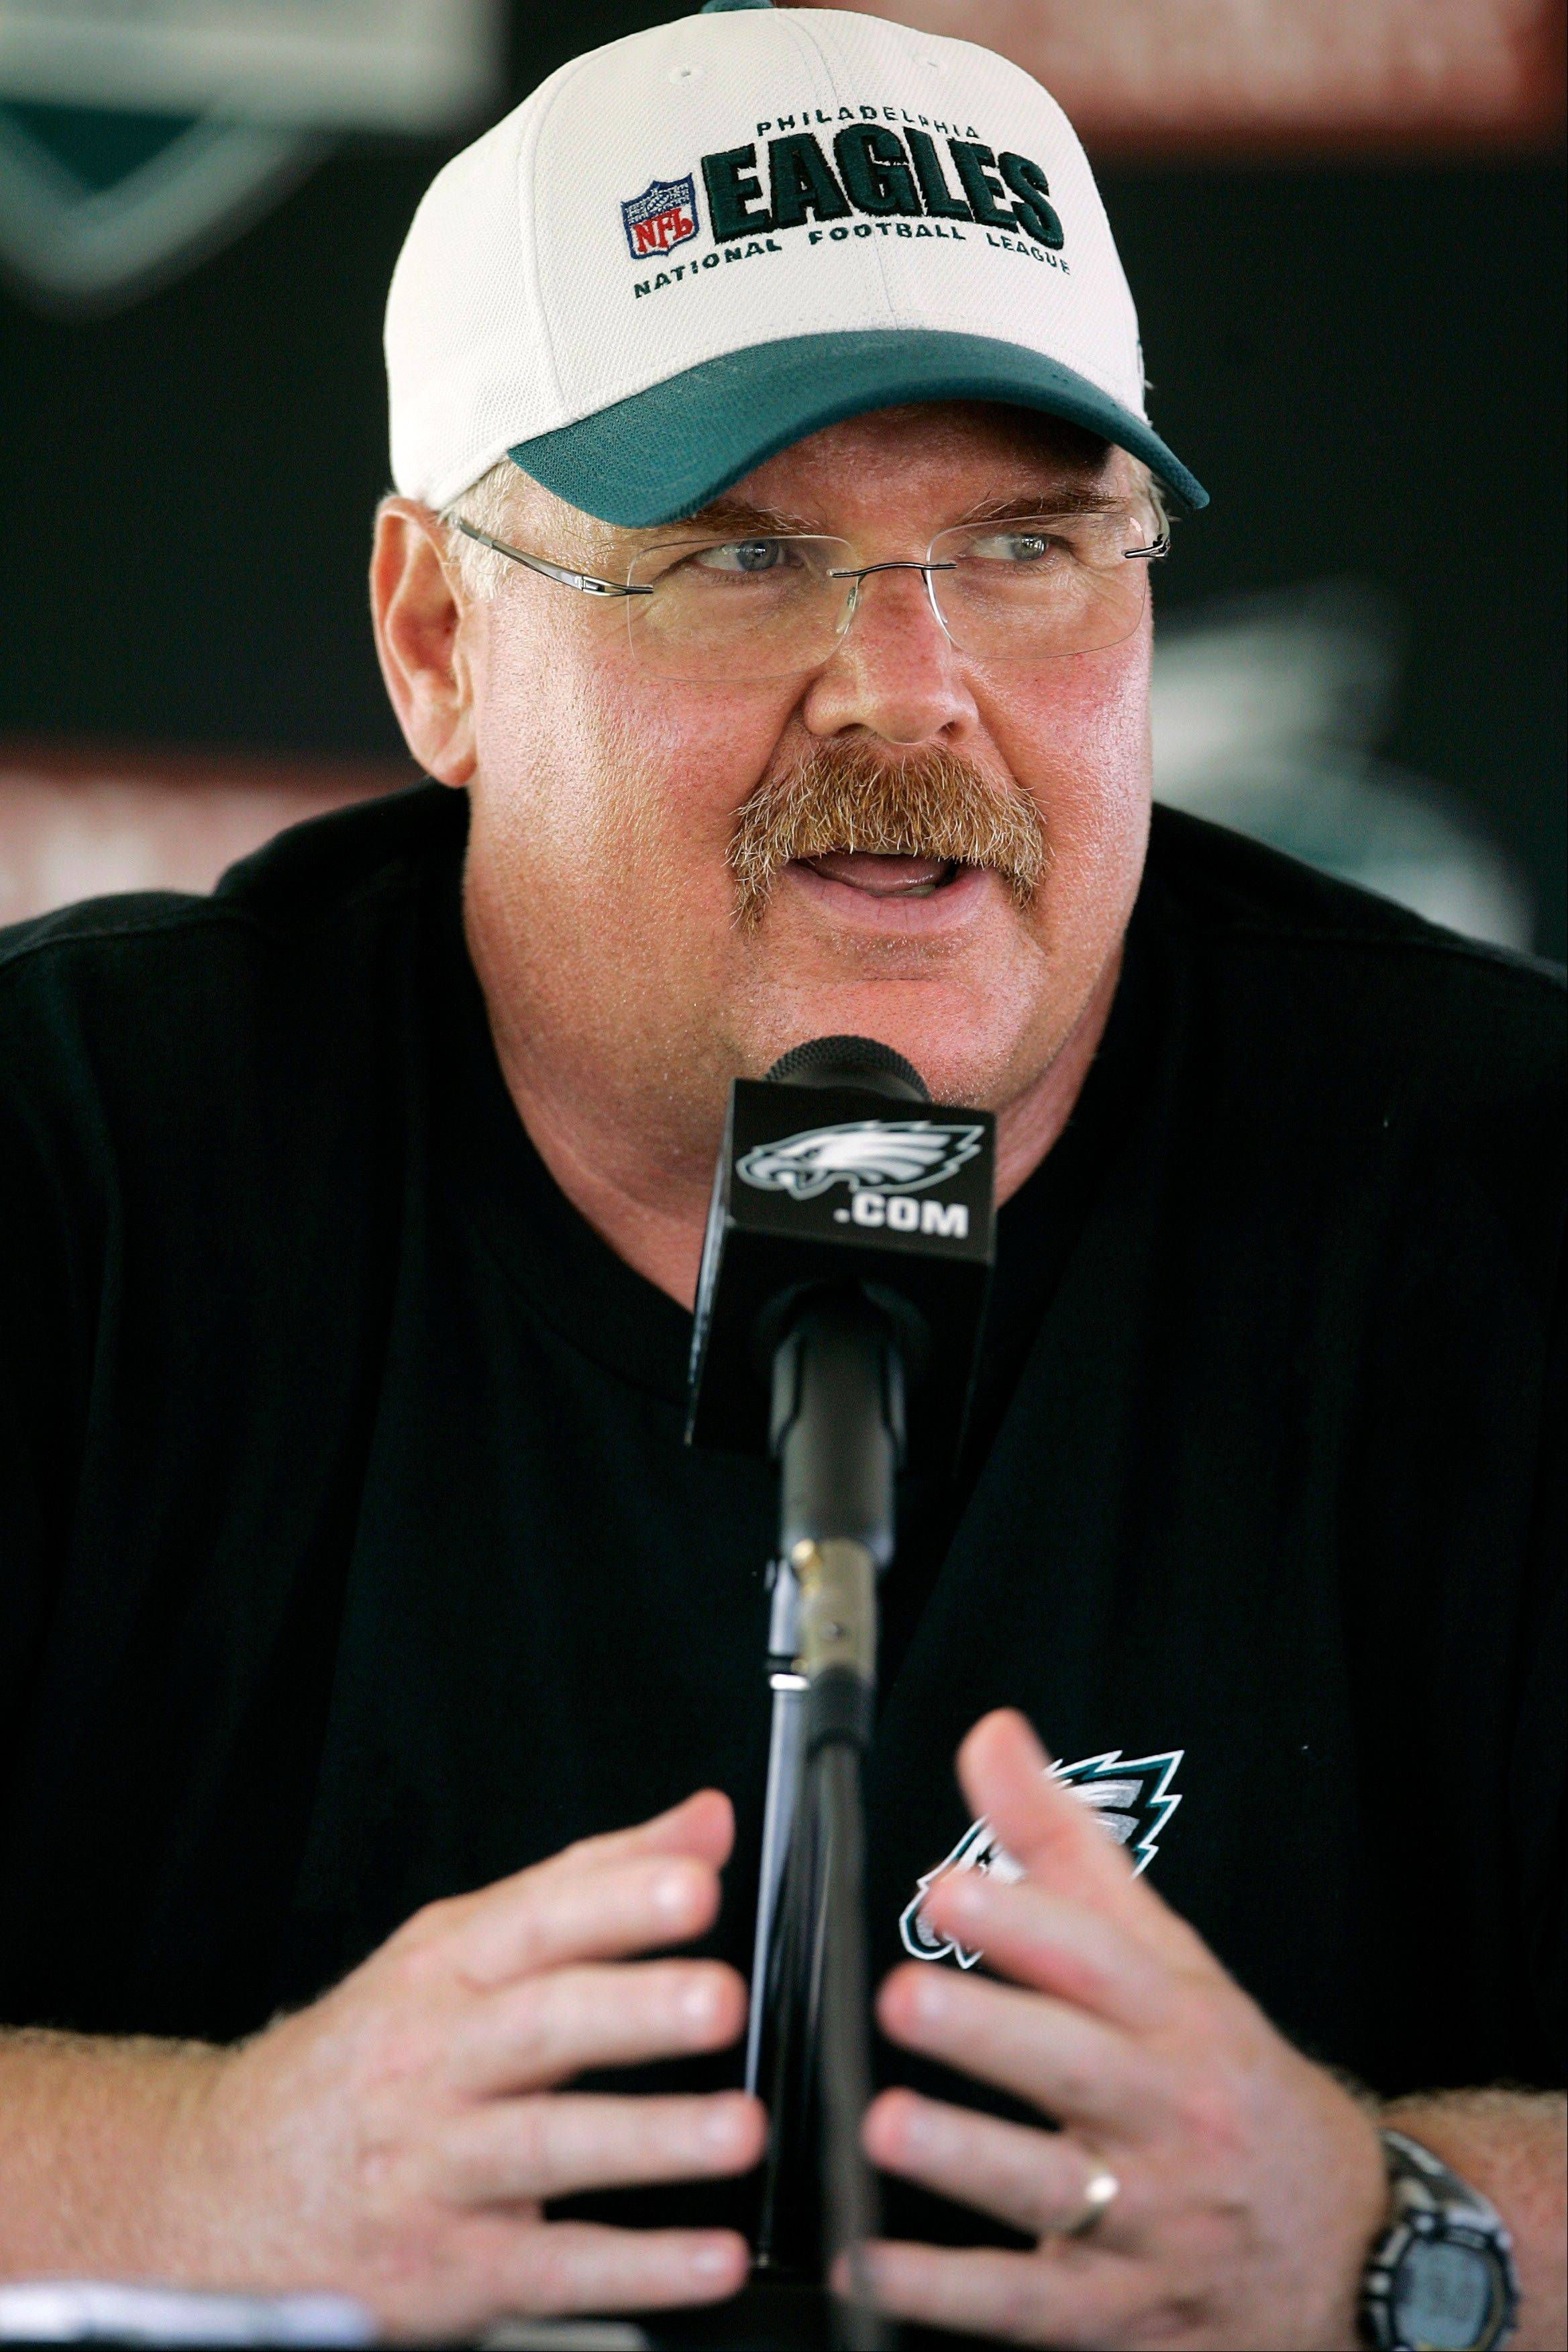 FILE - This July 30, 2011 file photo shows Philadelphia Eagles head coach Andy Reid talking with the media after the morning session at NFL football training camp at Lehigh University in Bethlehem, Pa. Reid arrived in Kansas City on Friday, Jan. 4, 2012, and the Chiefs are close to making an official announcement that he will become their next coach.